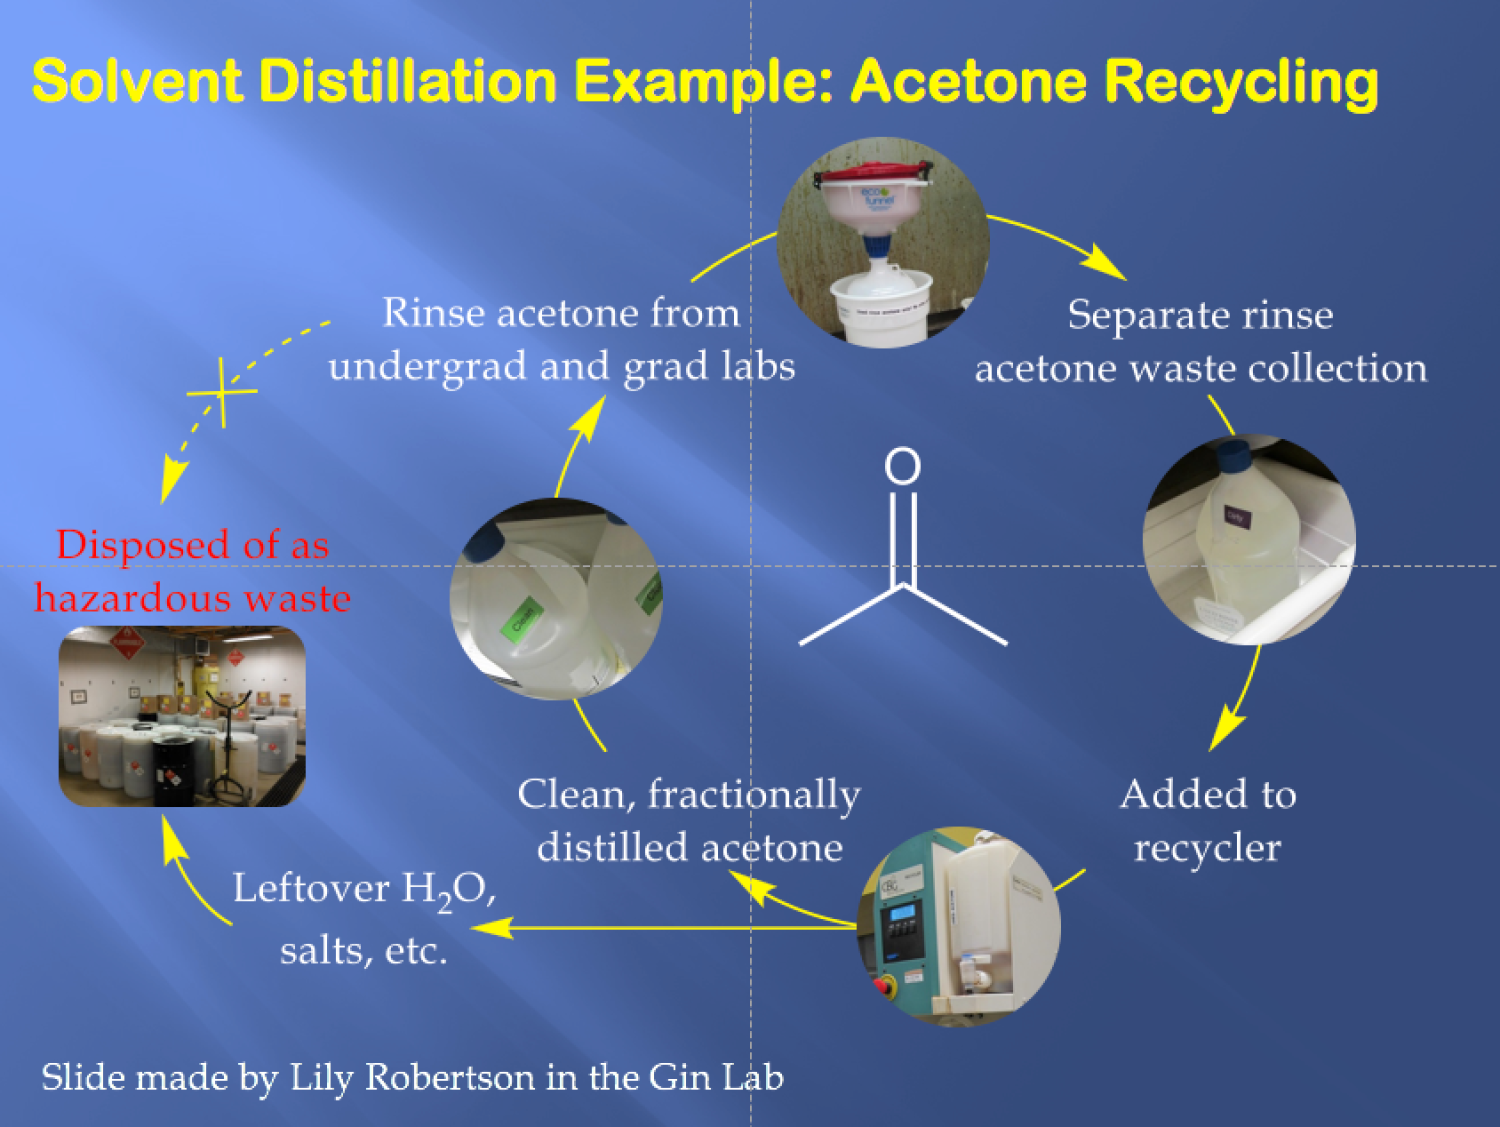 Explanation of Solvent Recycling Process for Acetone